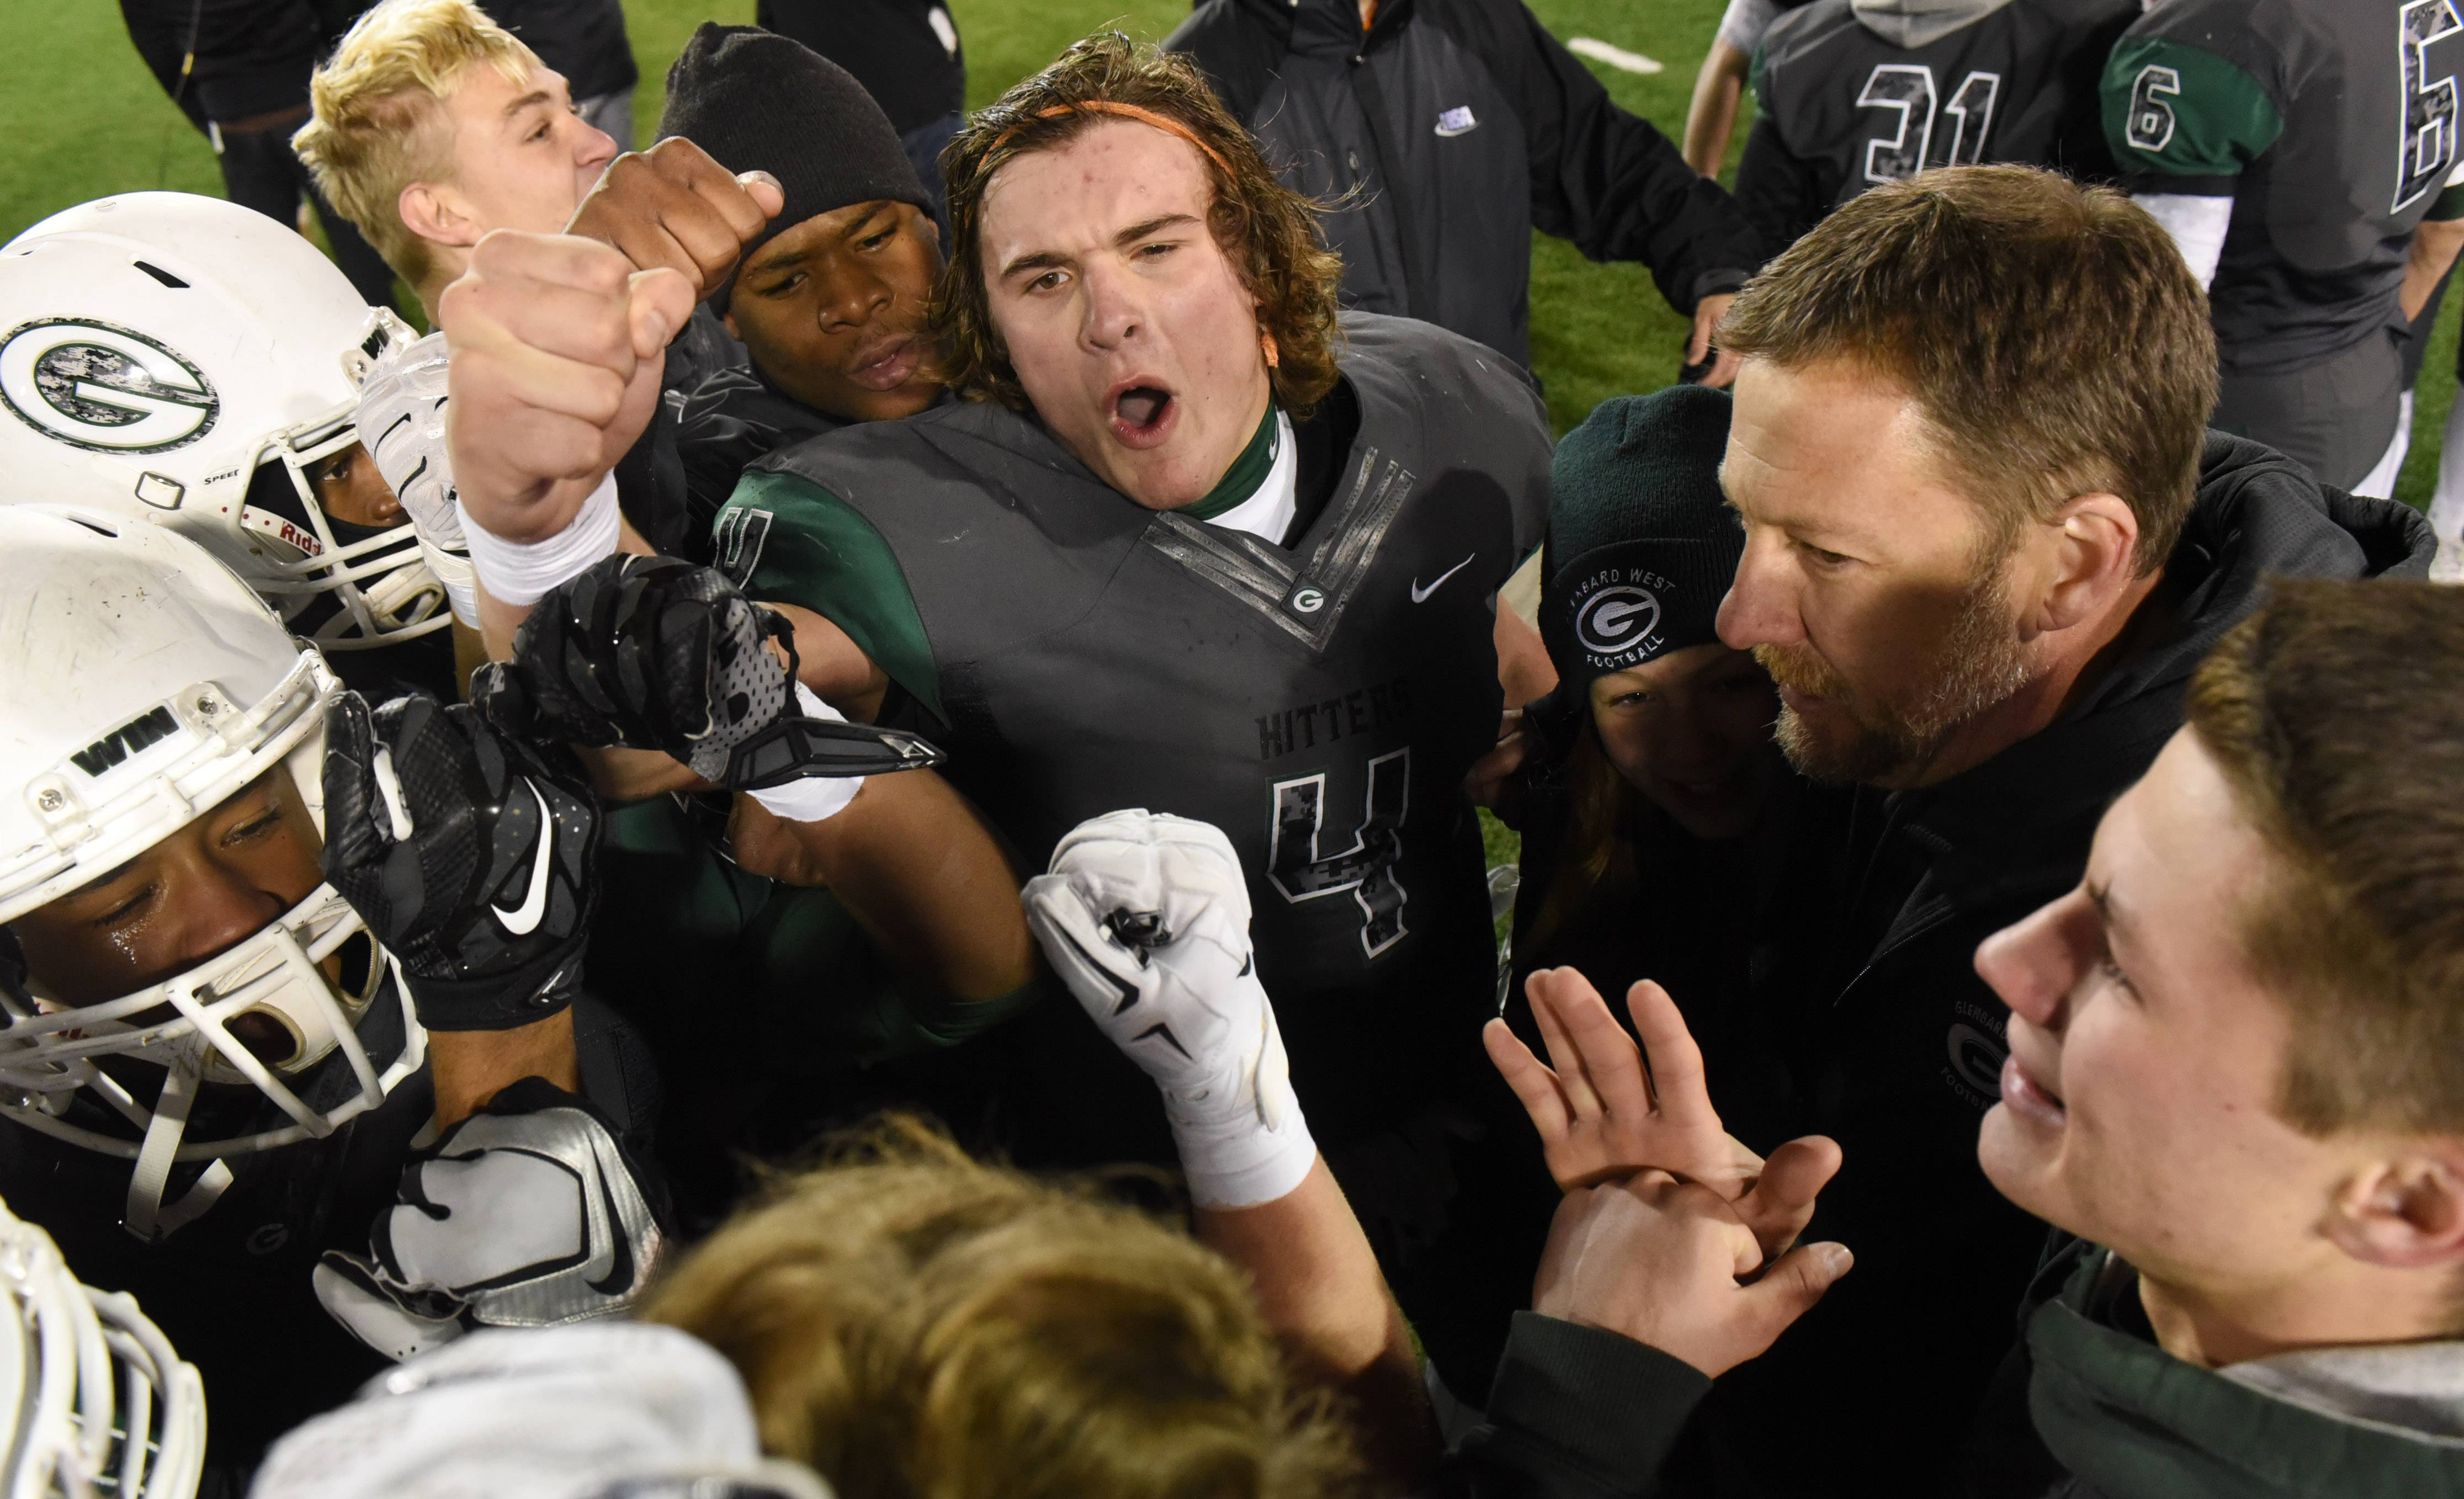 Glenbard West's Sam Brodner, top, celebrates with his teammates after defeating Libertyville in the Class 7A football championship game at Northern Illinois University in DeKalb Saturday.